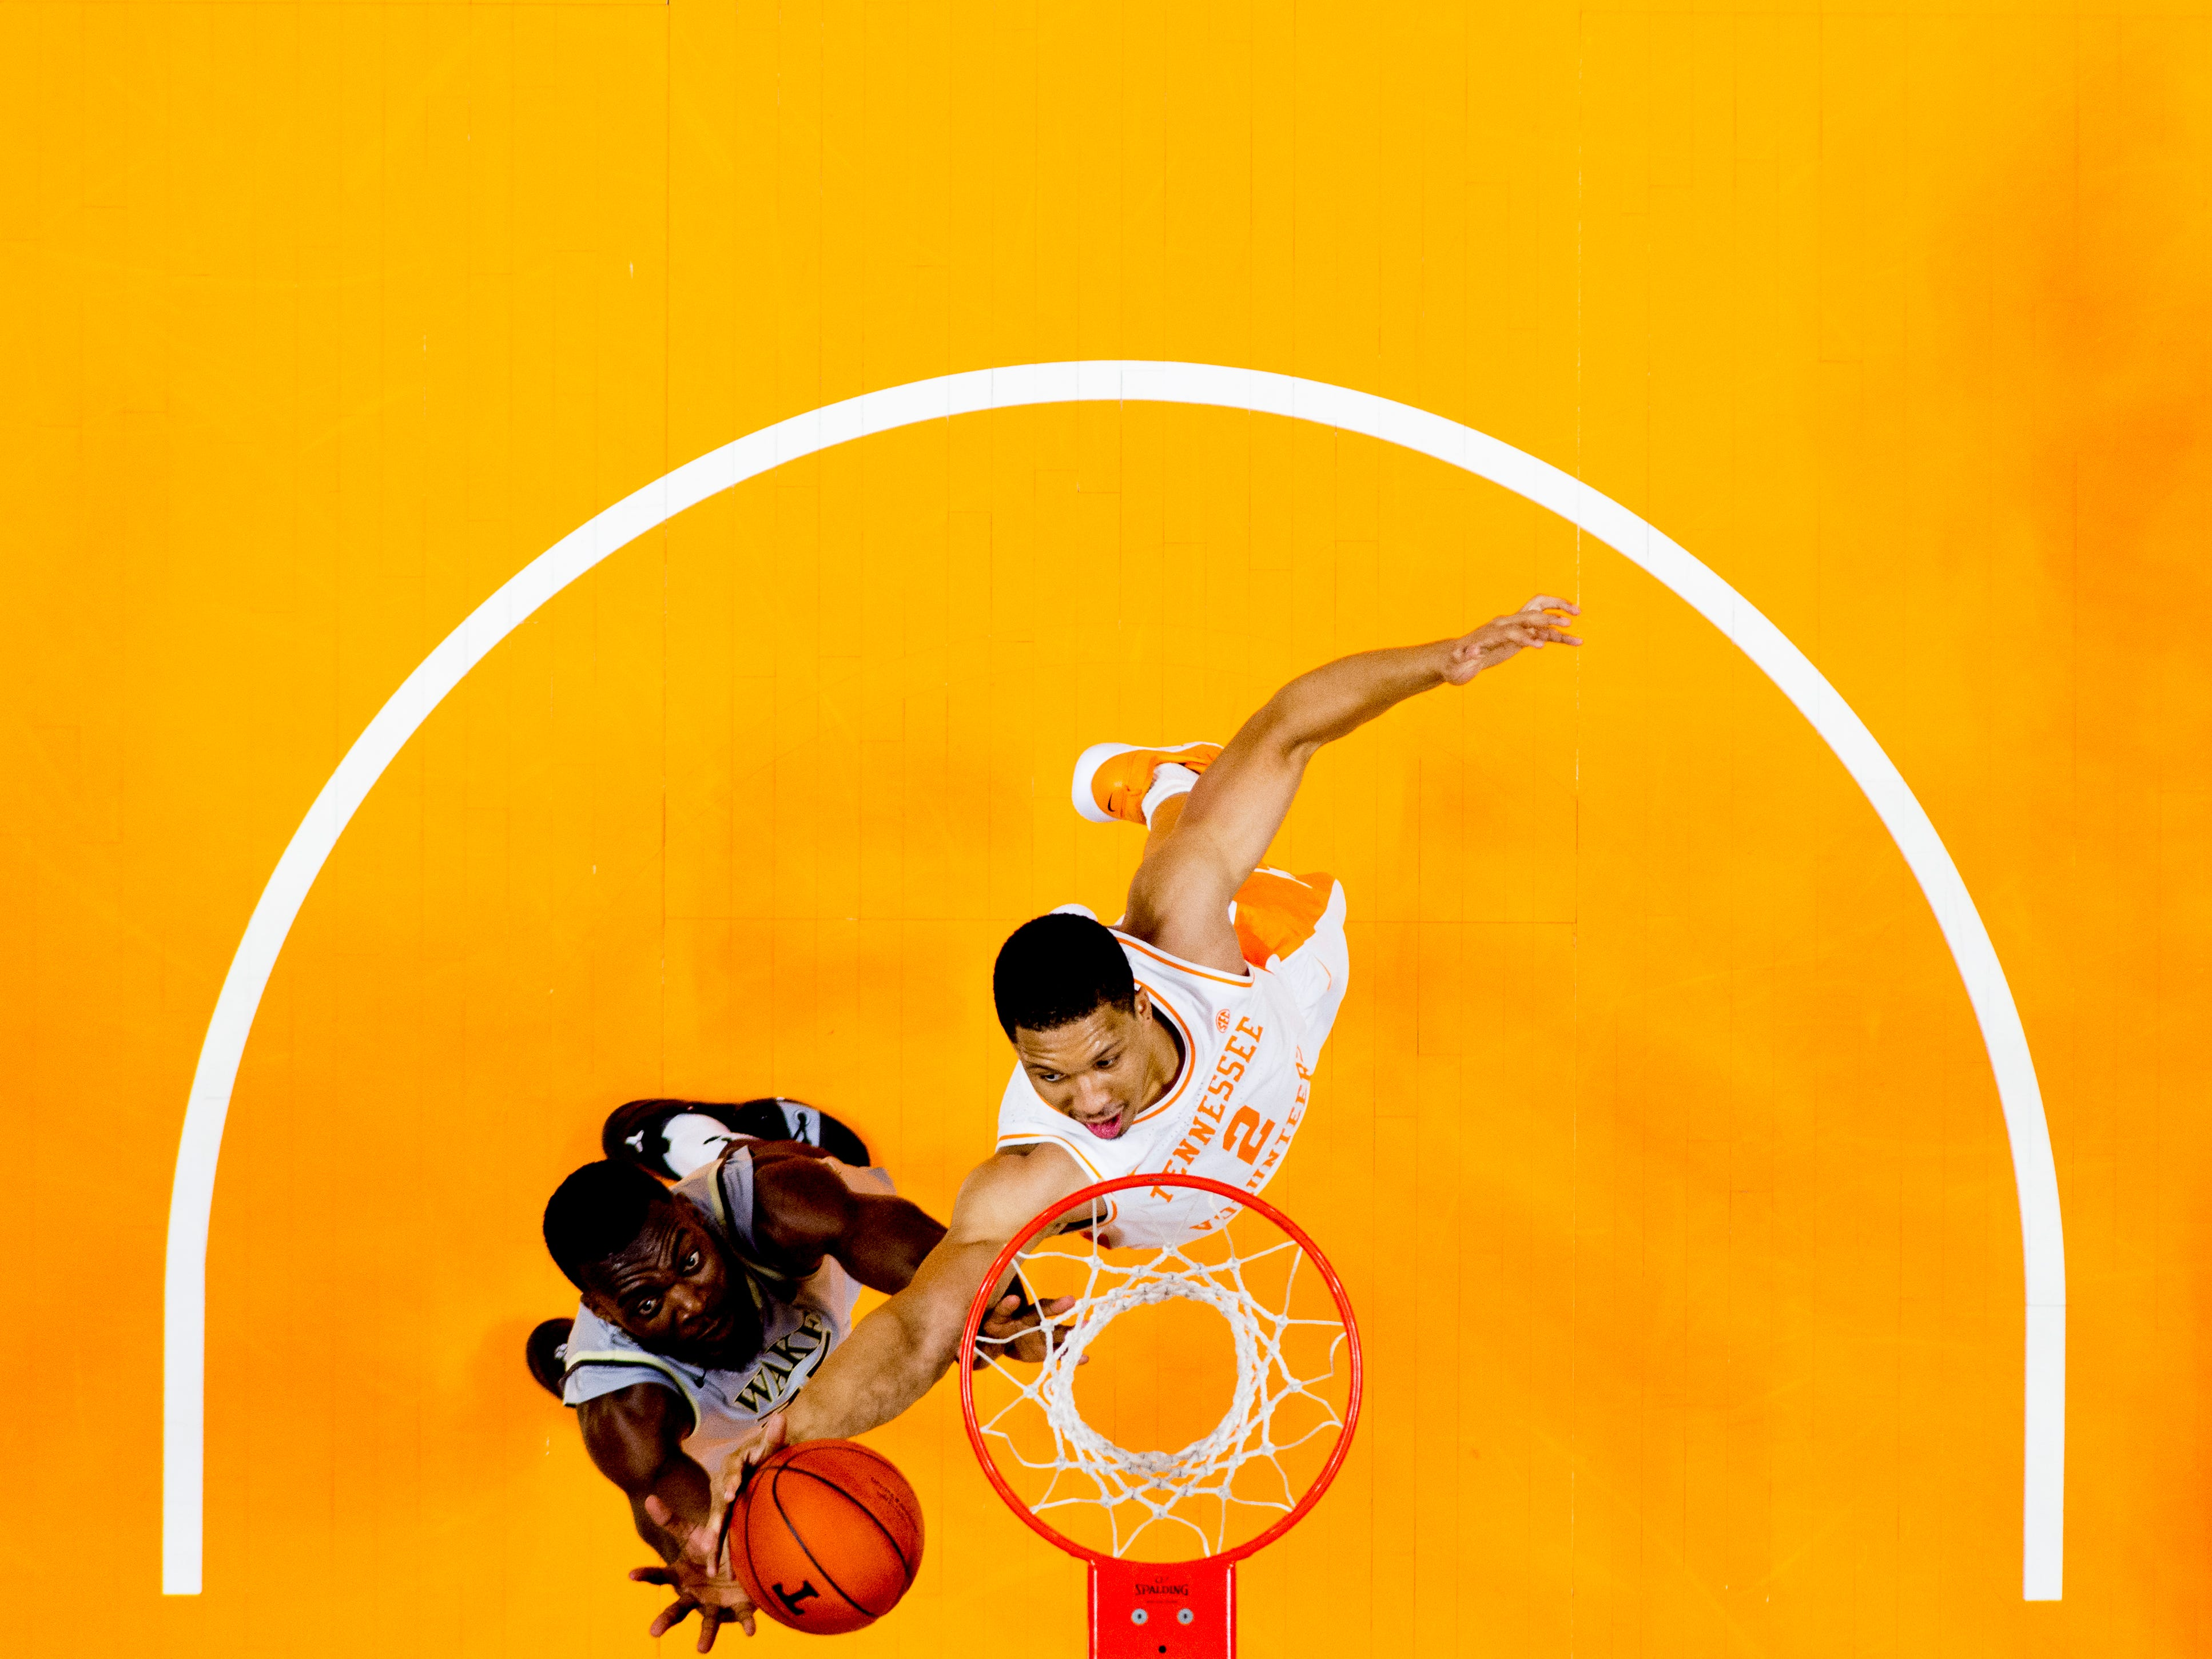 Tennessee forward Grant Williams (2) grabs the ball from Wake Forest forward Ikenna Smart (35) during a game between Tennessee and Wake Forest at Thompson-Boling Arena in Knoxville, Tennessee on Saturday, December 22, 2018.